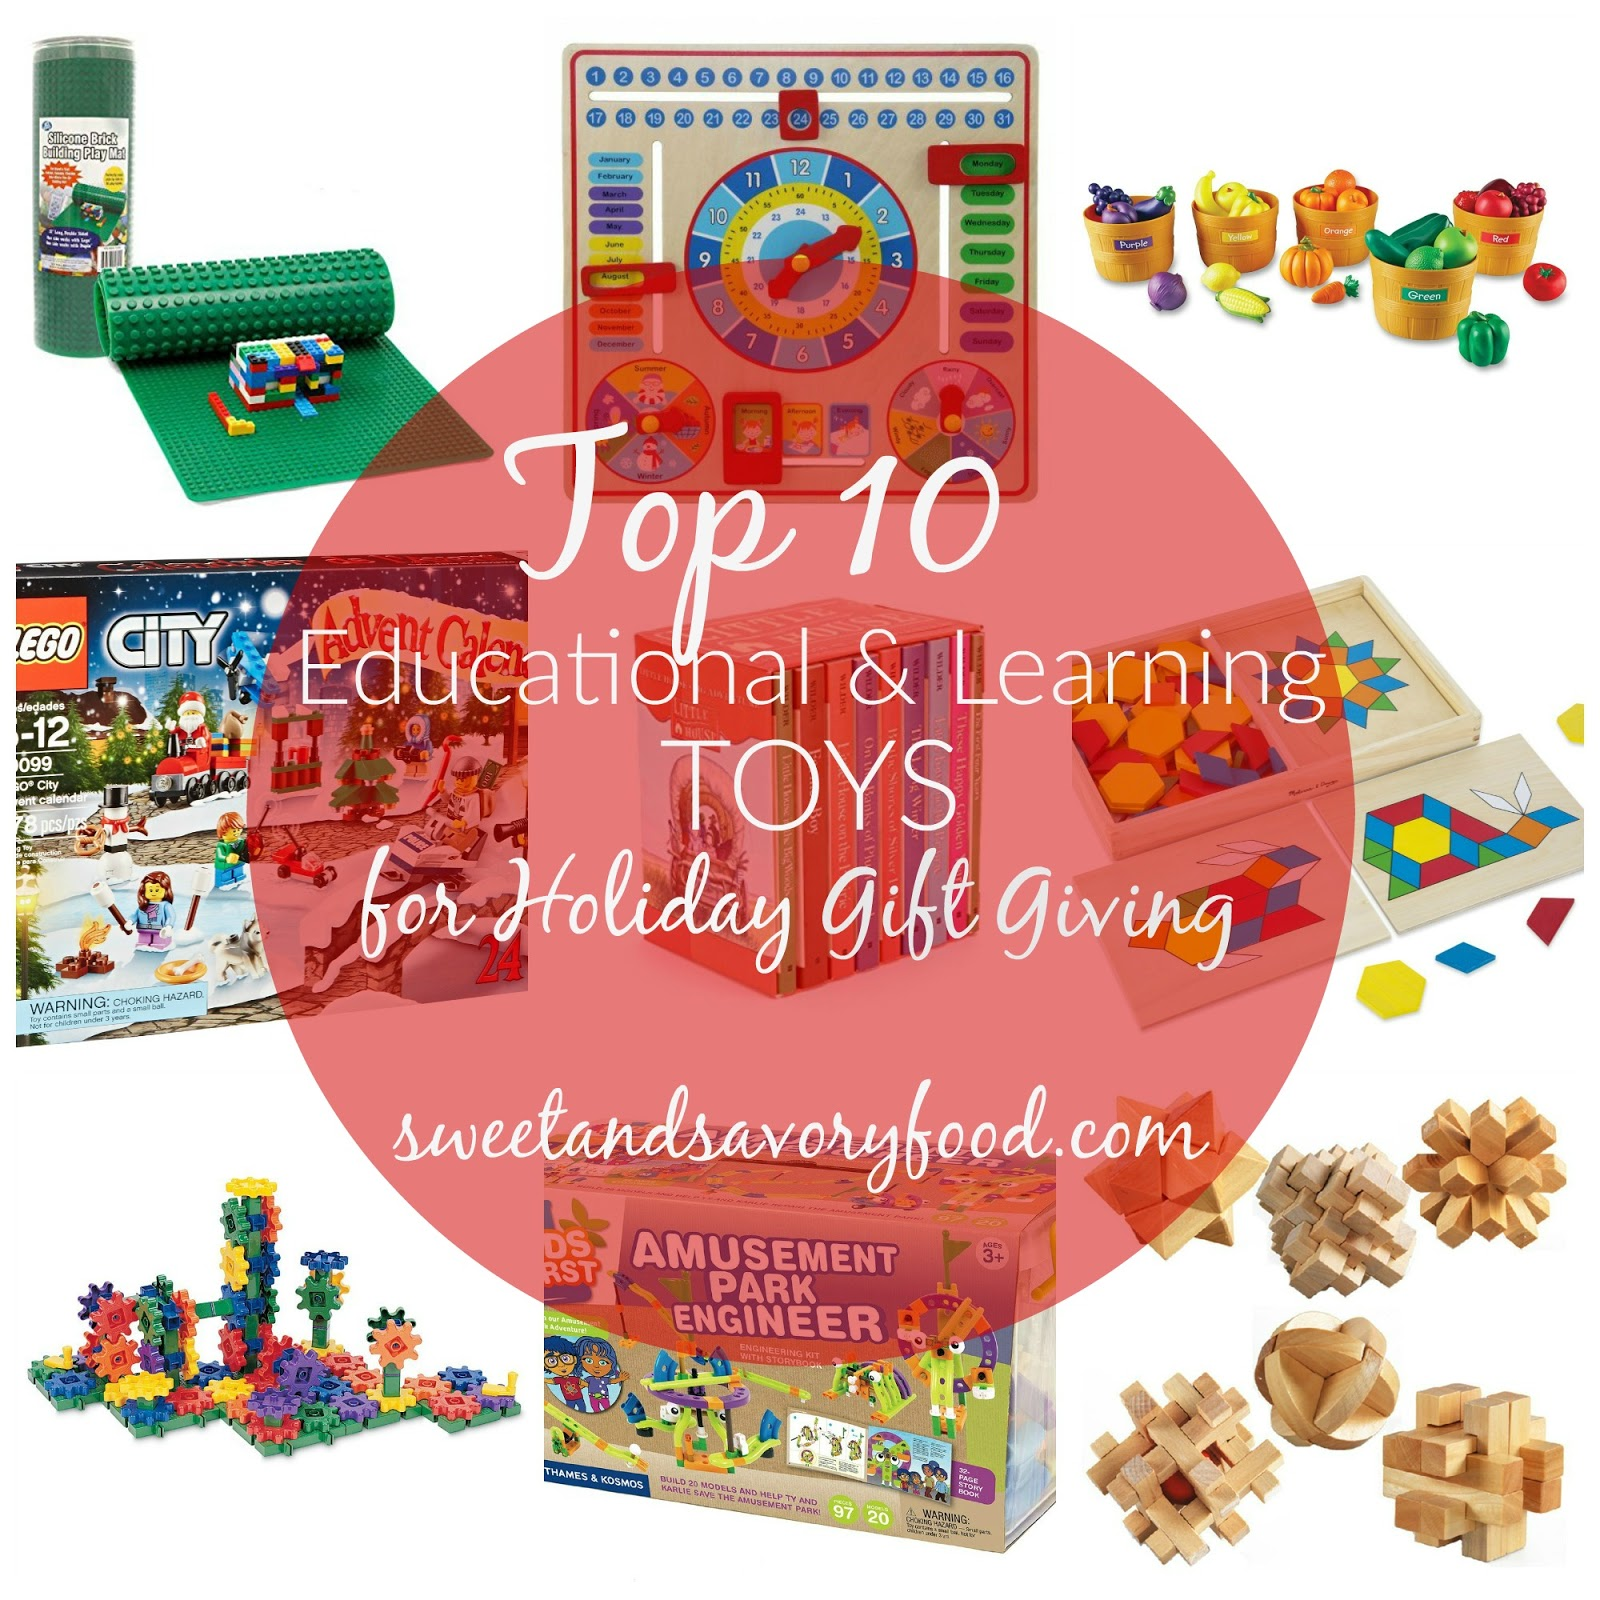 TOP 10 EDUCATIONAL AND LEARNING TOYS FOR HOLIDAY GIFTS